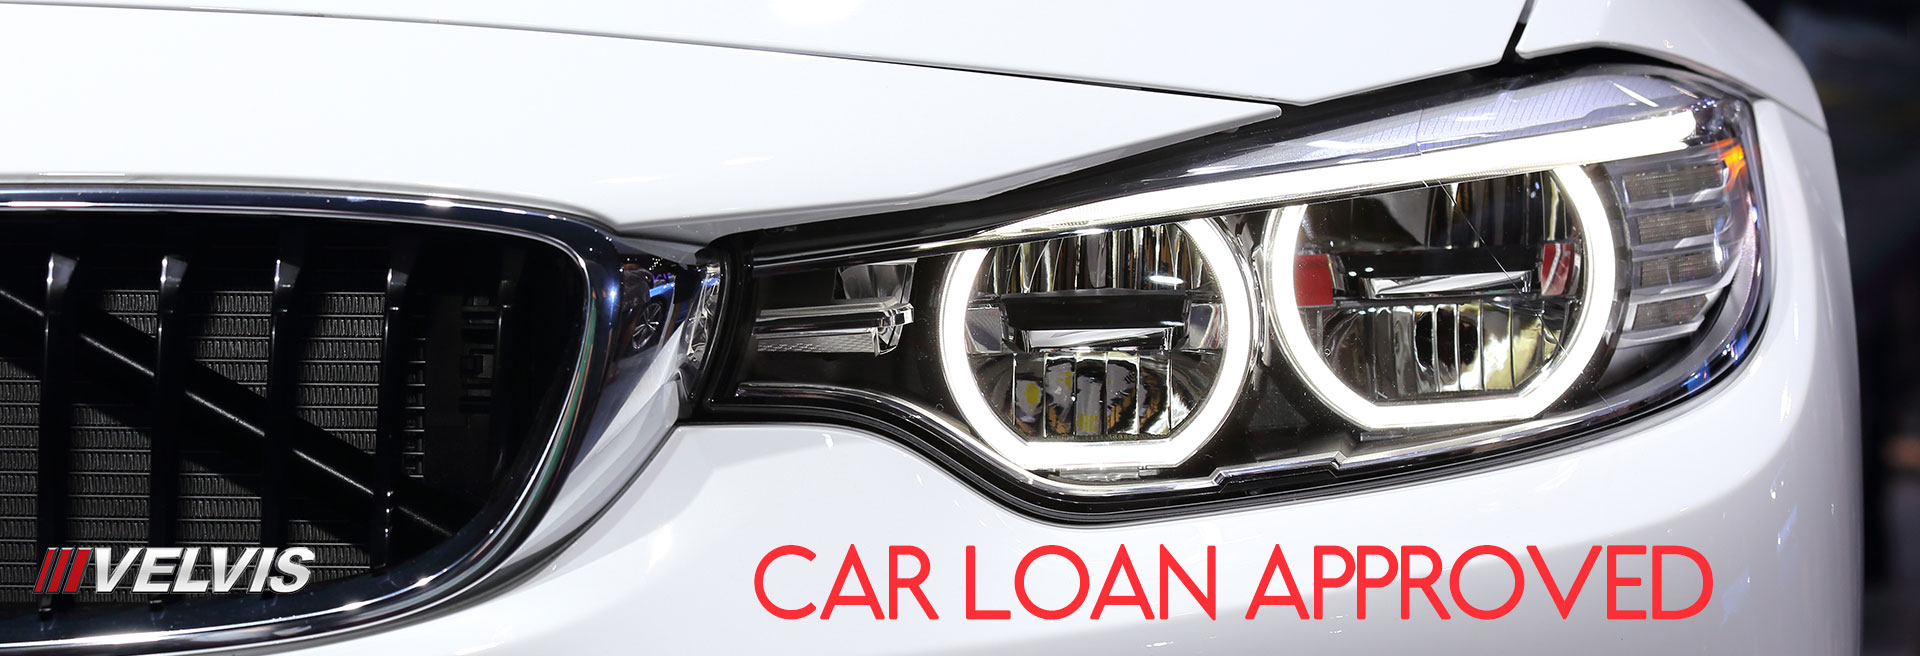 Finance your next used car with Vlvis quality used cars in Essex